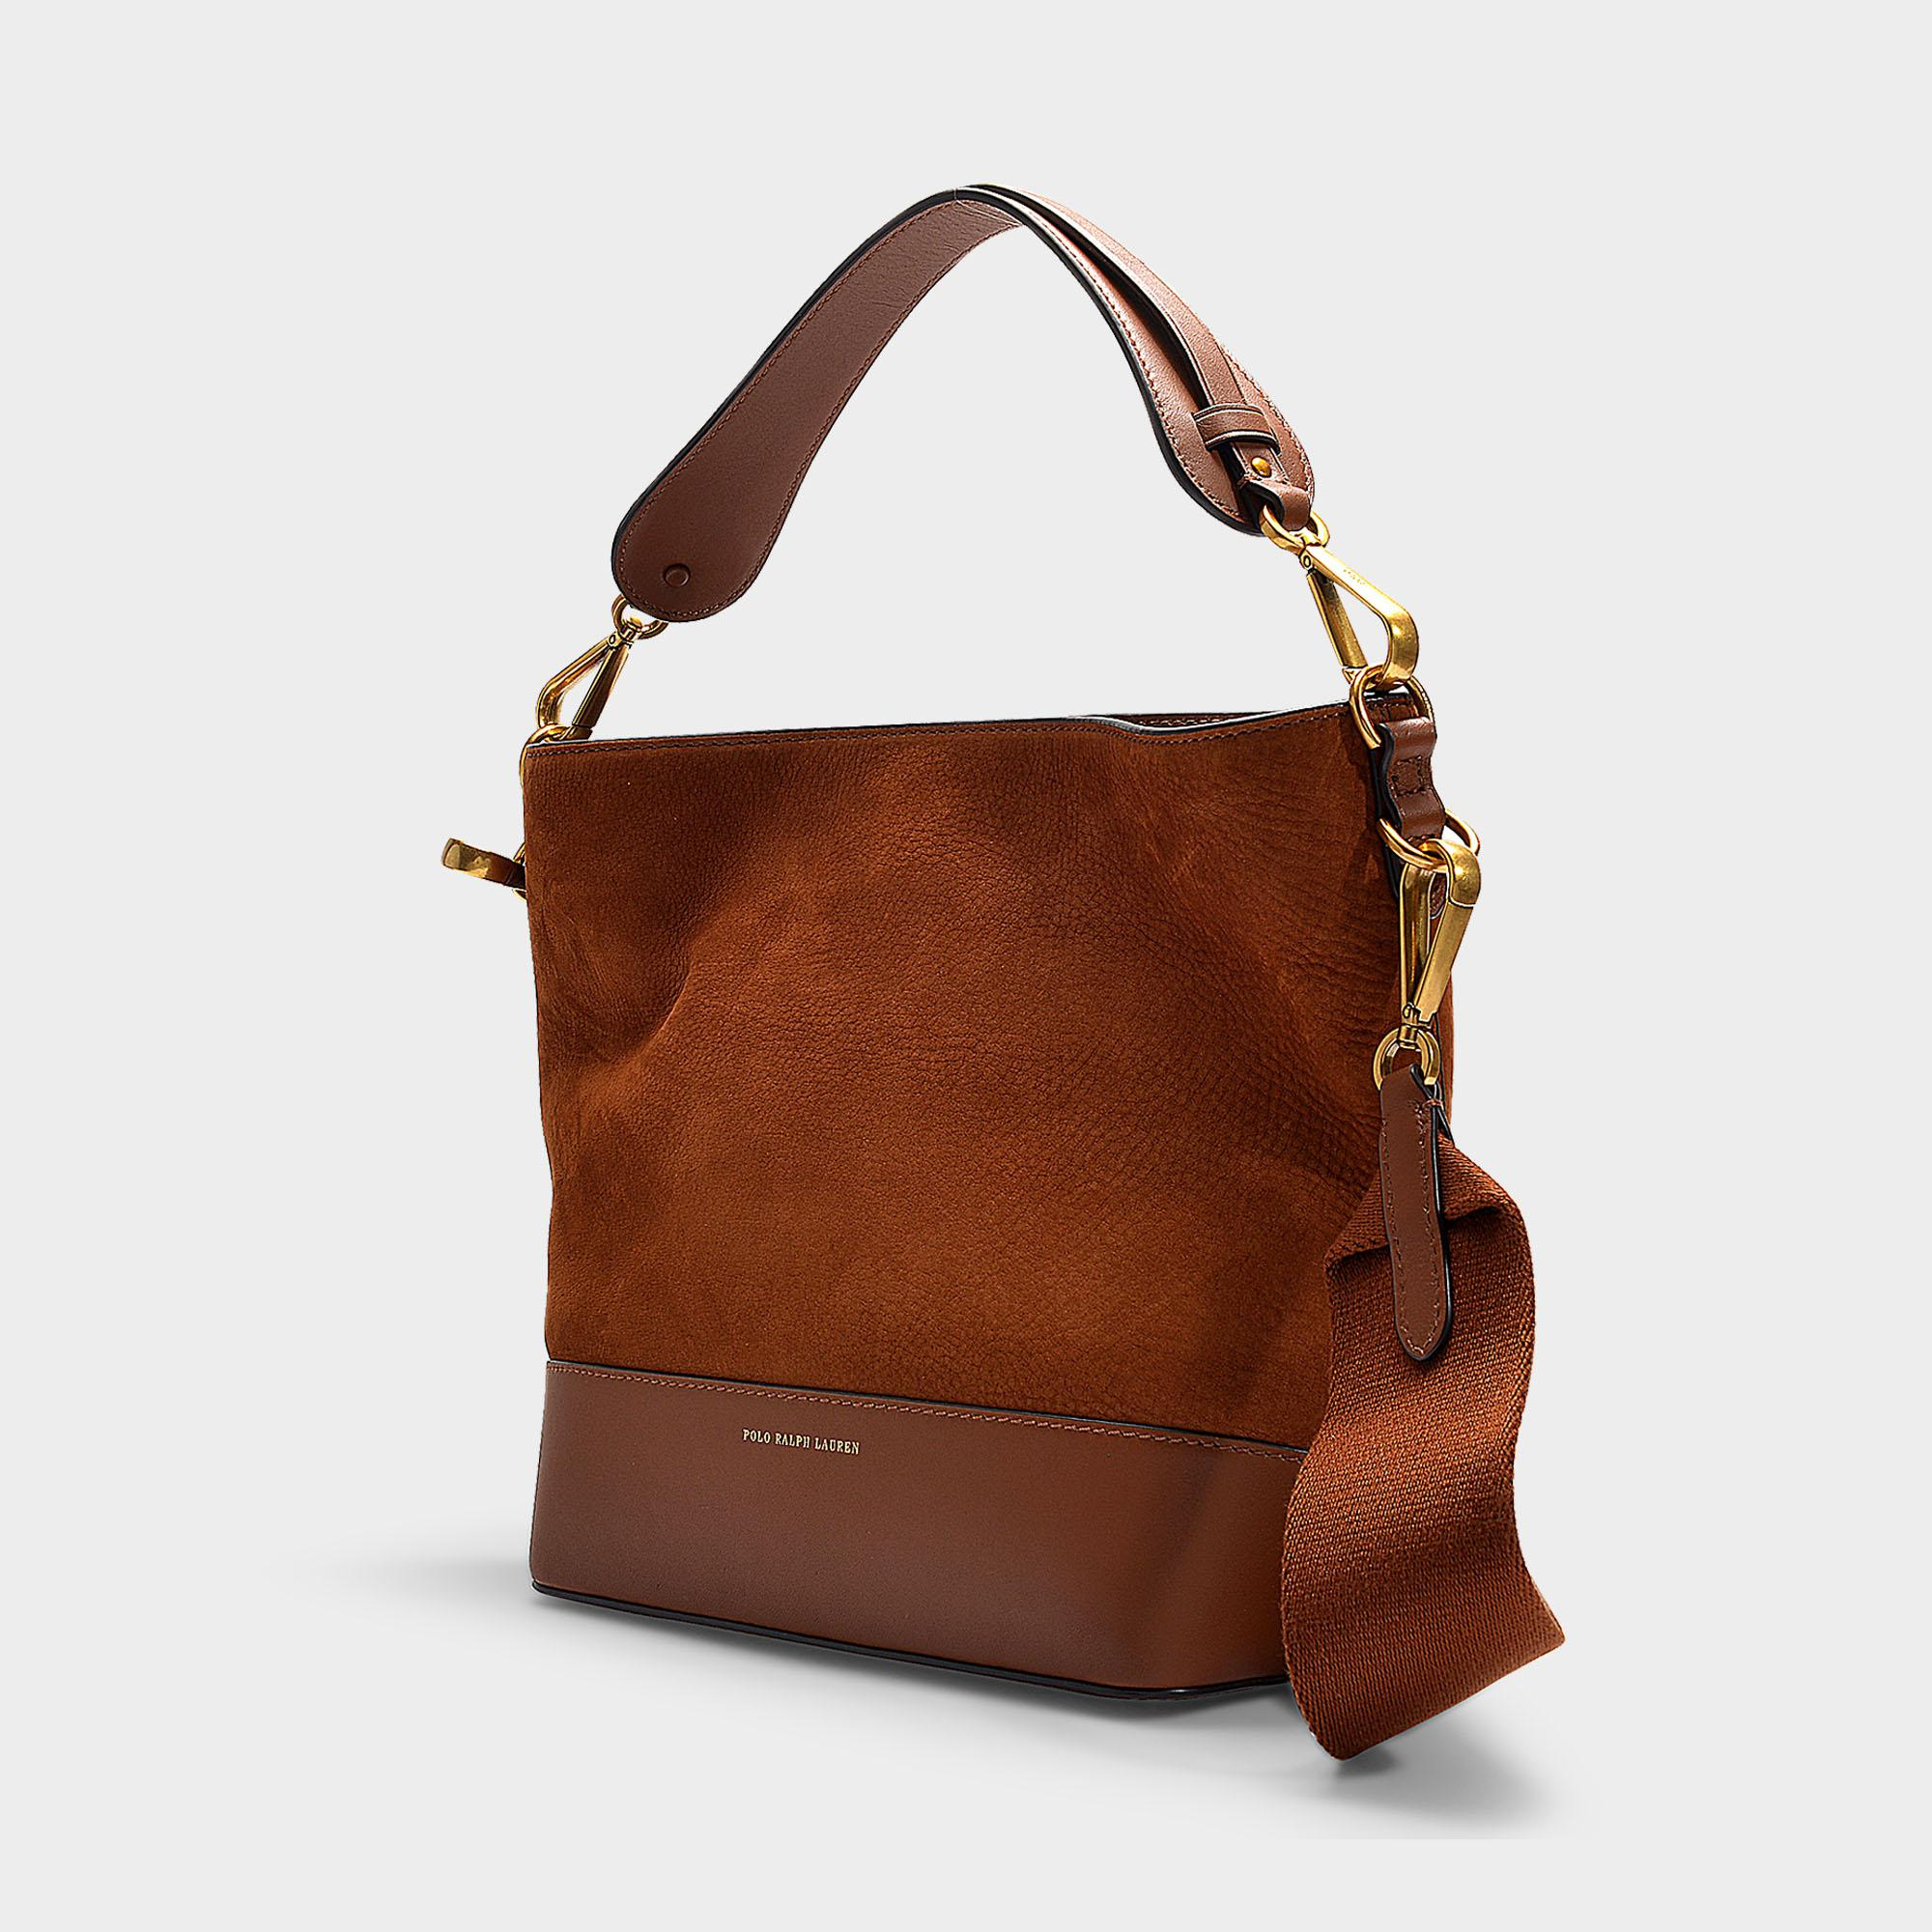 014ae68956e7 Polo Ralph Lauren - Brown Sullivan Bucket Hobo Small Bag In Saddle Nubuck  And Nappa Leather. View fullscreen